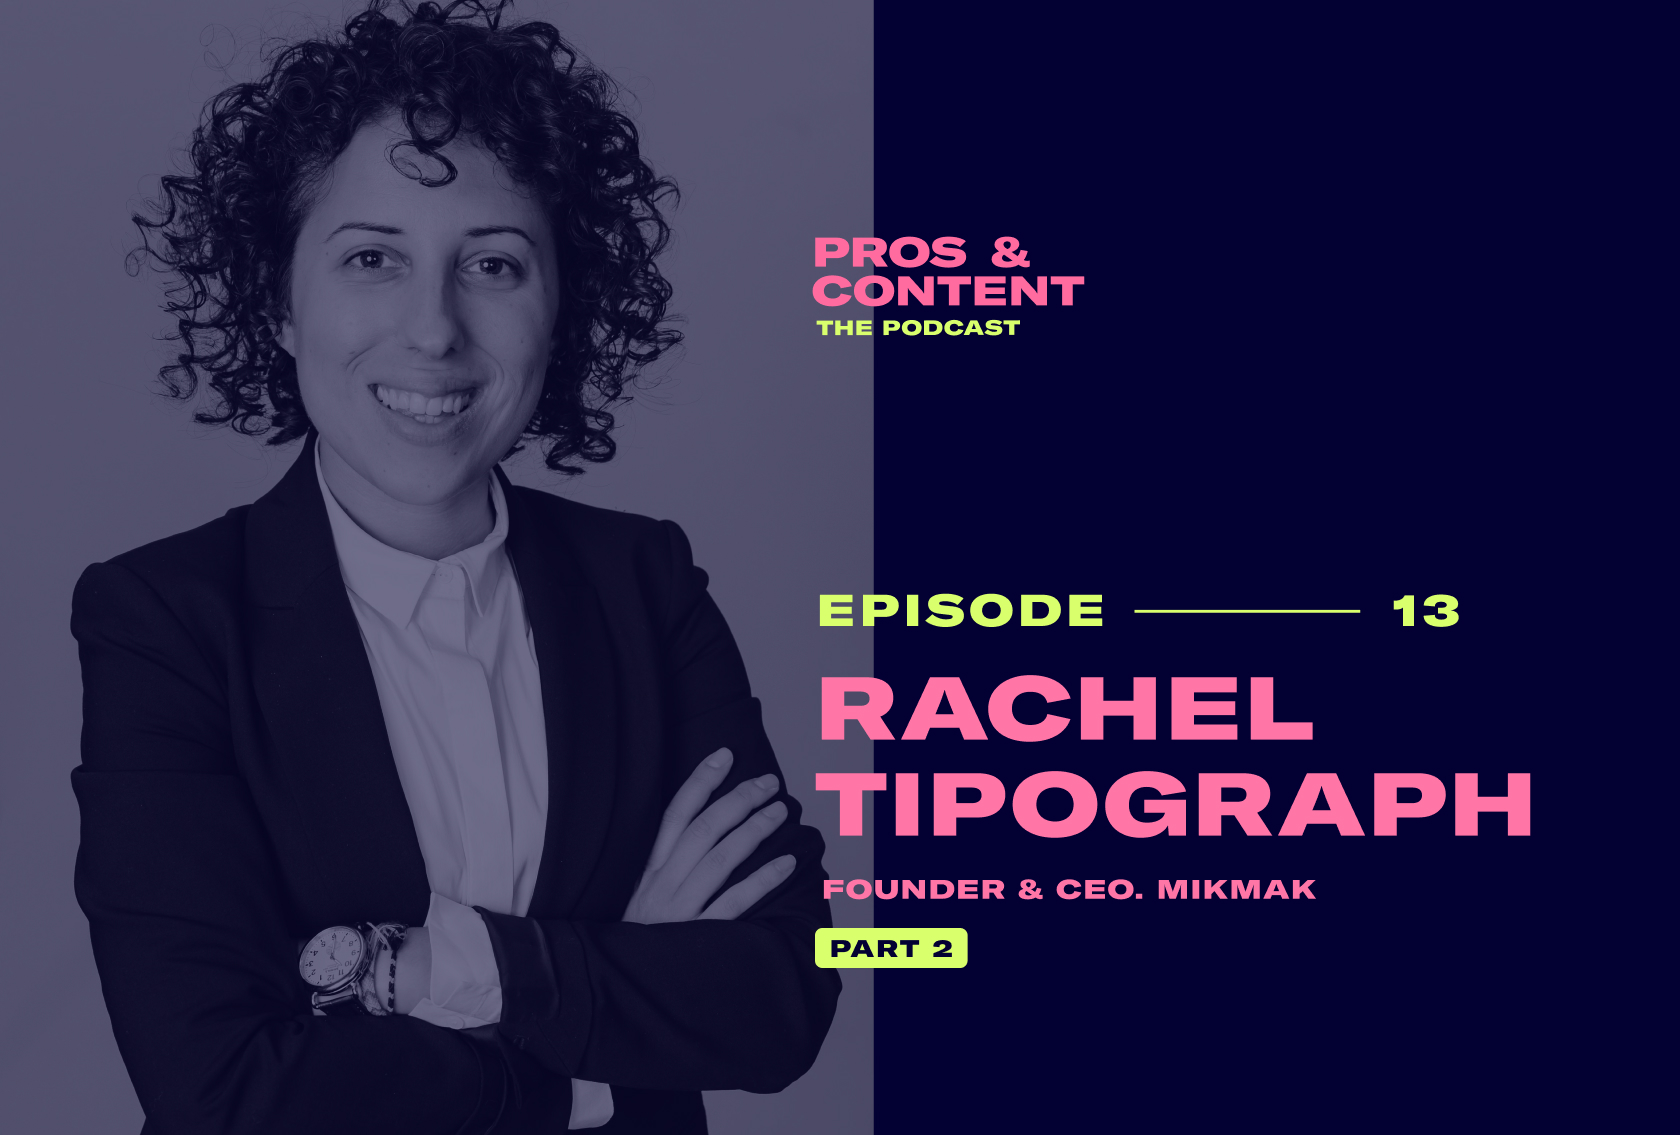 Pros & Content Podcast: Rachel Tipograph [PART 2]